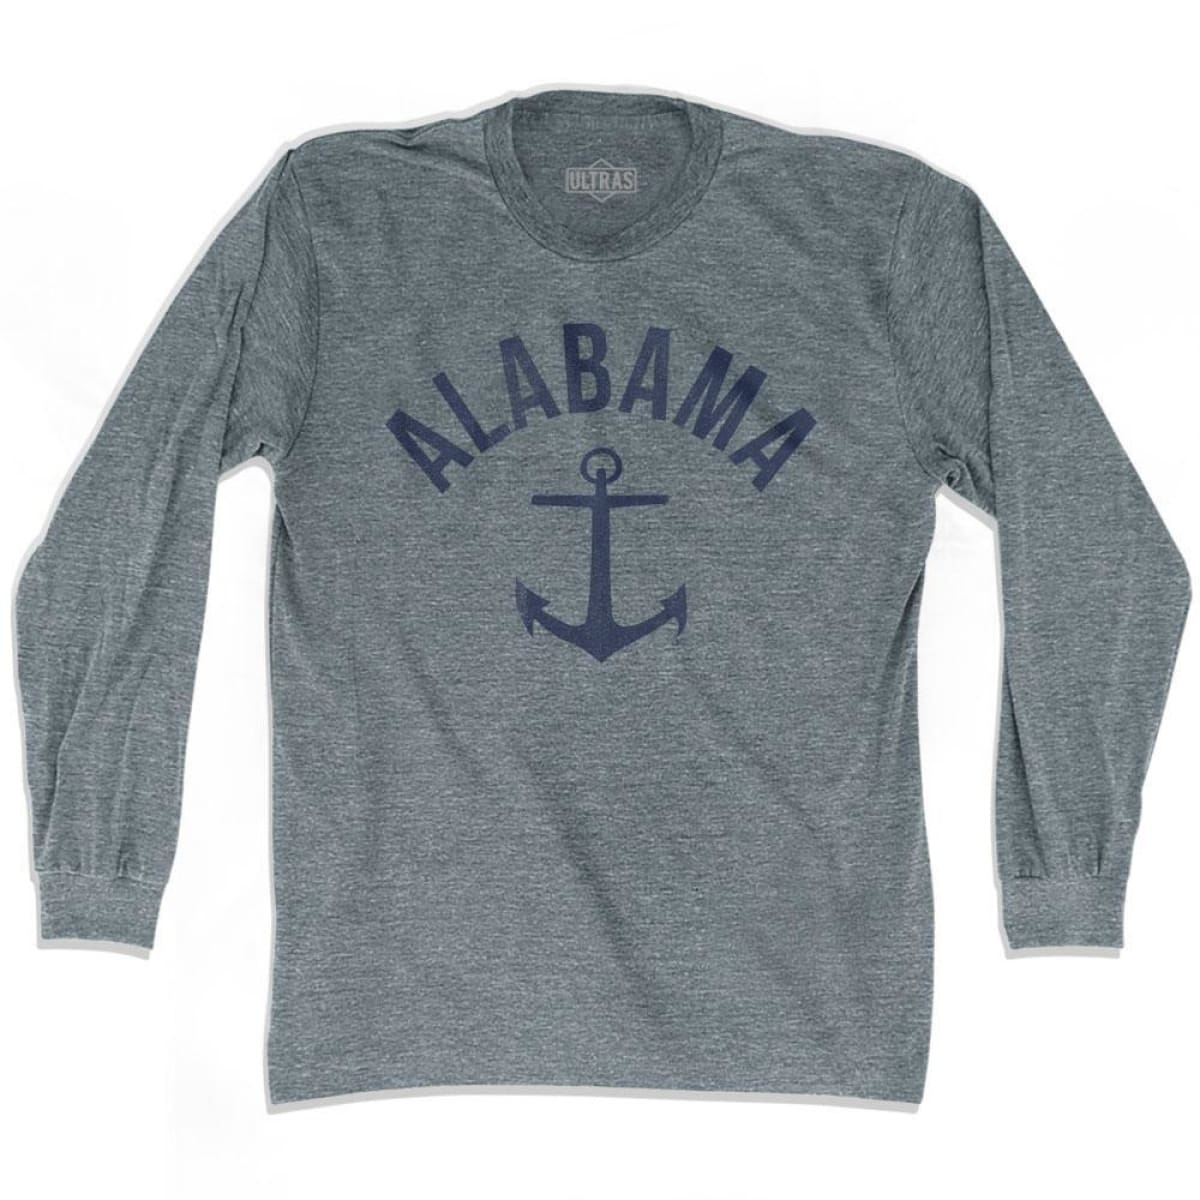 Alabama State Anchor Home Tri-Blend Adult Long Sleeve T-shirt - Athletic Grey / Adult Small - Anchor Home